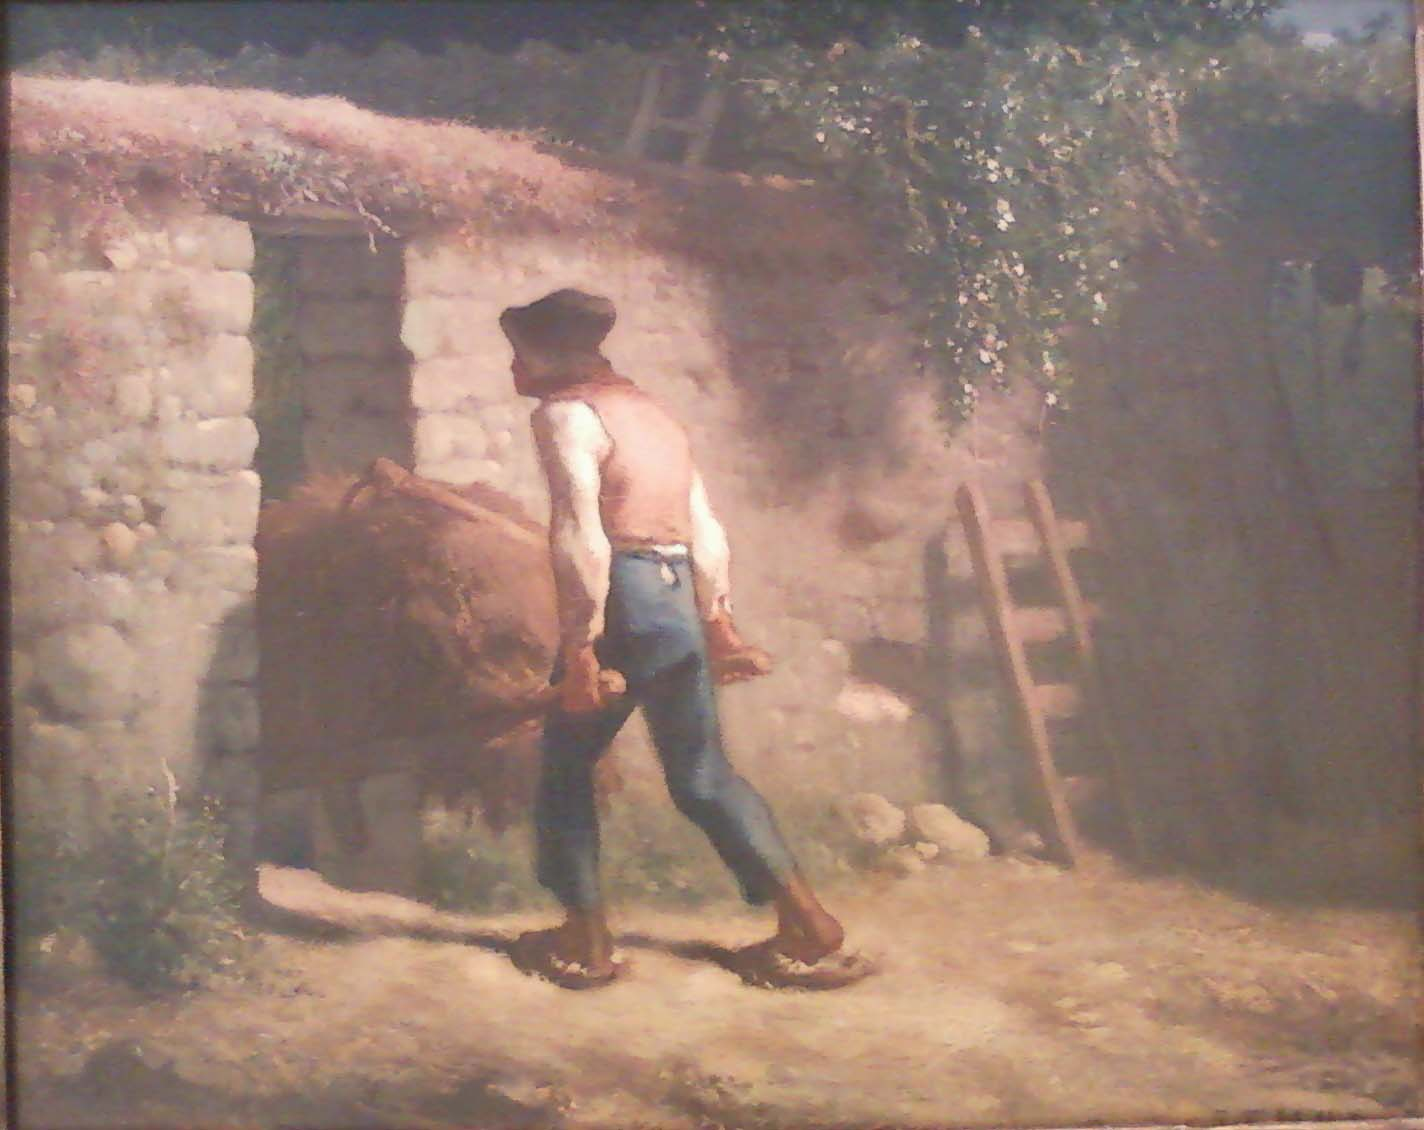 realism essay topics jean francois millet th century french realism writework oil painting of peasant by jean fran ois millet from ca